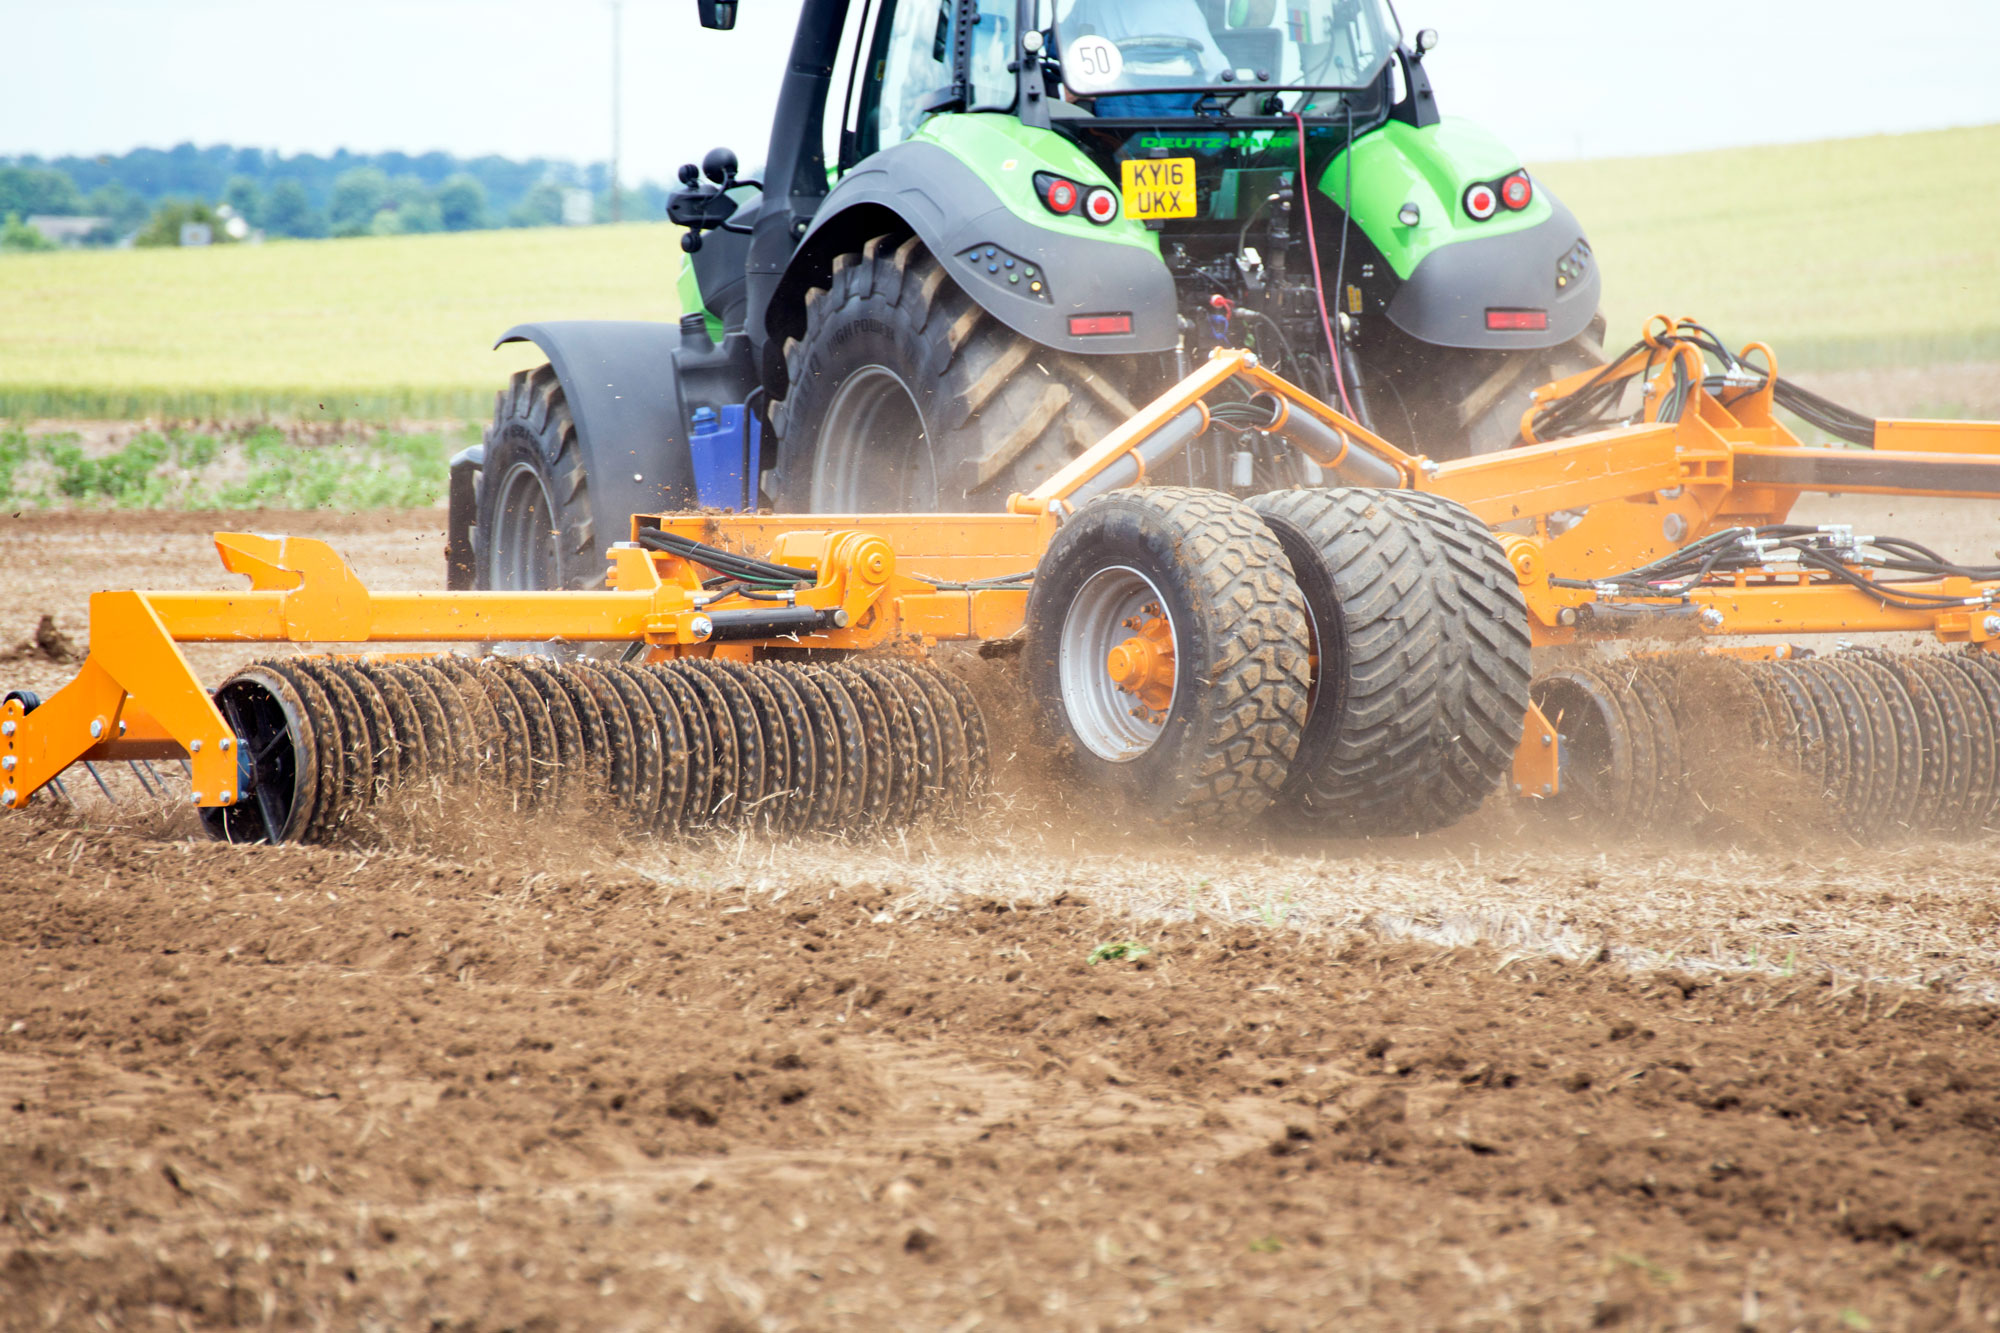 tractor-farming-agriculture-nfu